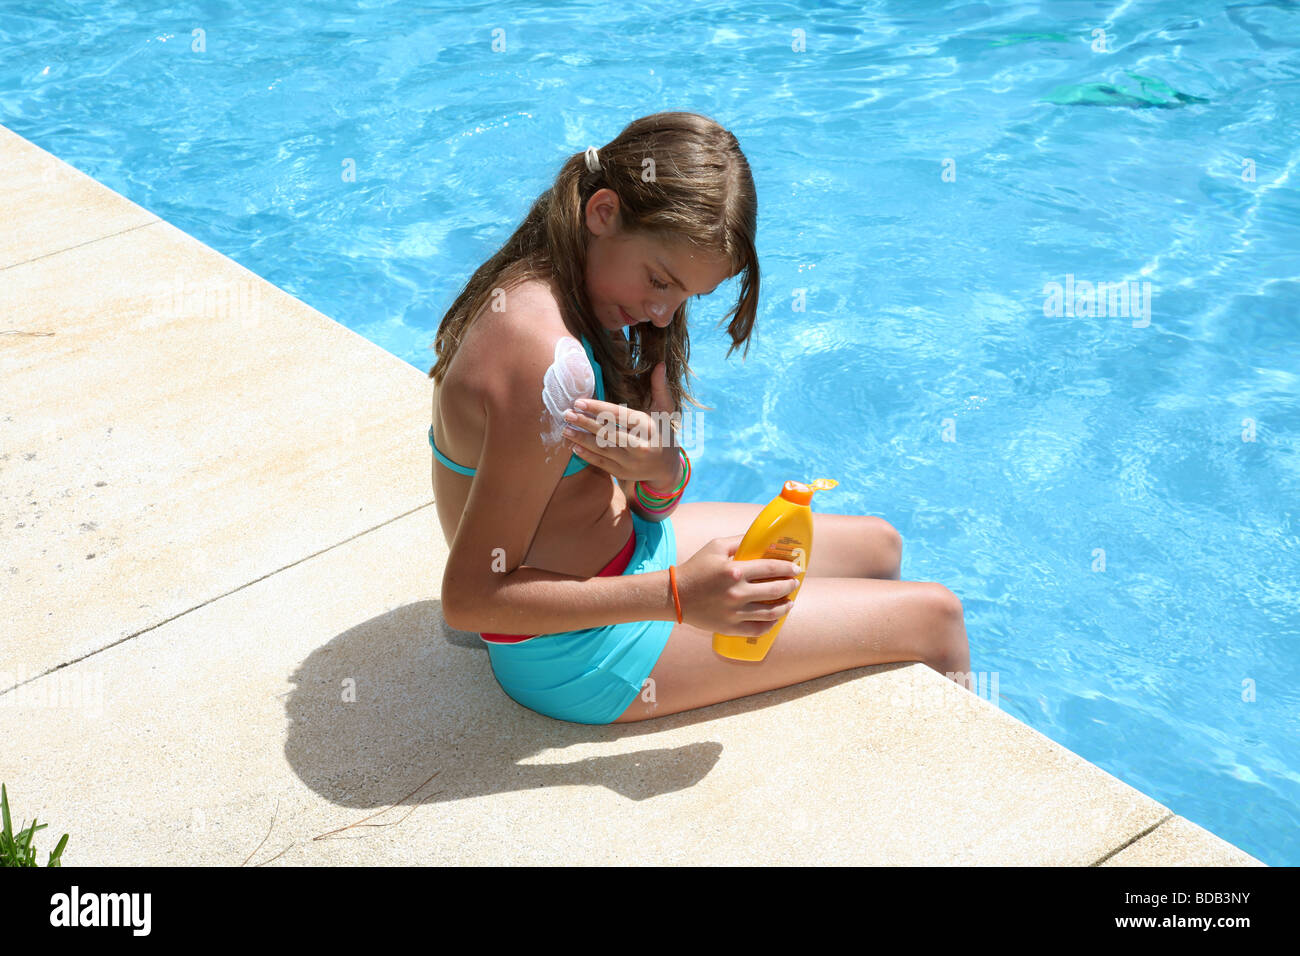 Young Caucasian girl applying suncream sitting by a pool - Stock Image